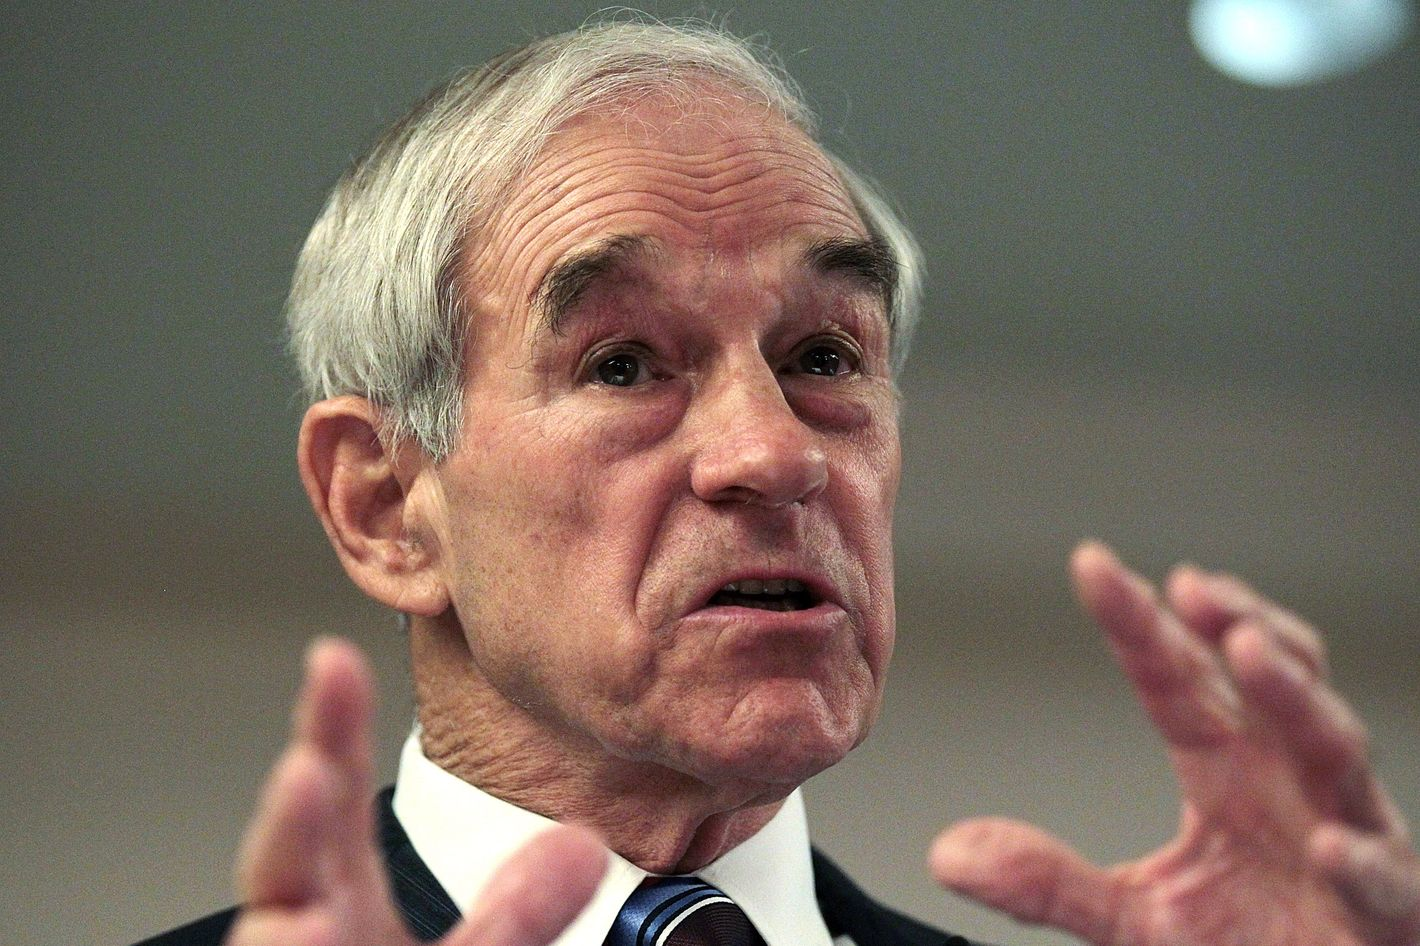 PERRY, IA - DECEMBER 29:  Presidential hopeful U.S. Rep Ron Paul (R-TX) speaks during a campaign event at the Pattee Hotel on December 29, 2011 in Perry, Iowa.  With less than one week to go before the Iowa caucuses, Ron Paul continues to campaign through Iowa.  (Photo by Justin Sullivan/Getty Images)